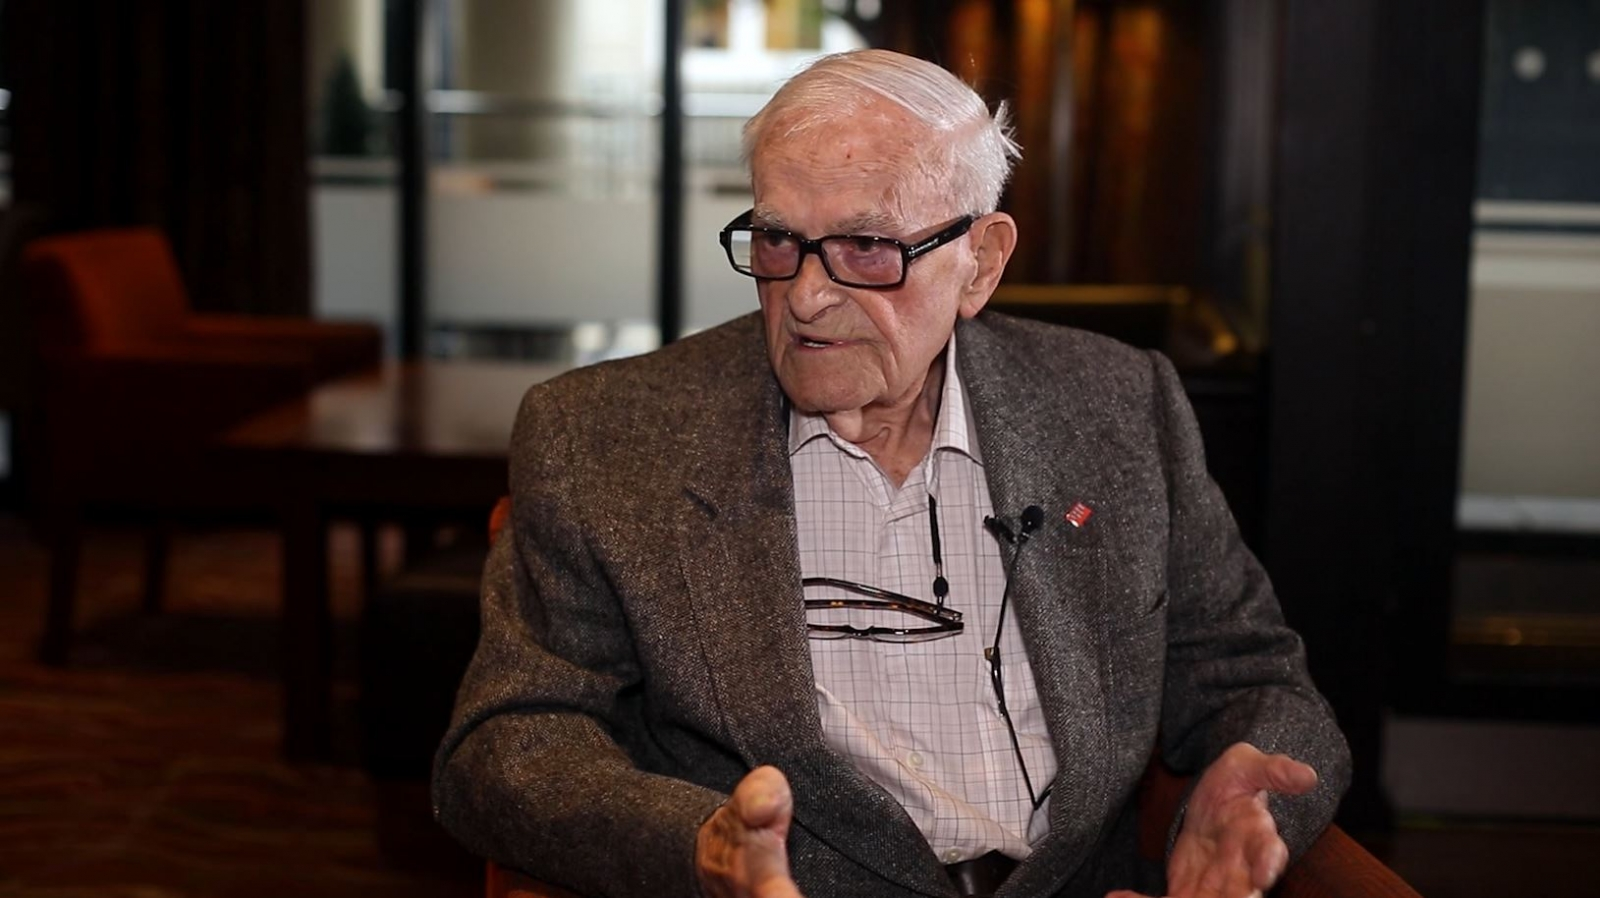 WWII Veteran Harry Leslie Smith Warns Not to Repeat History in Iraq